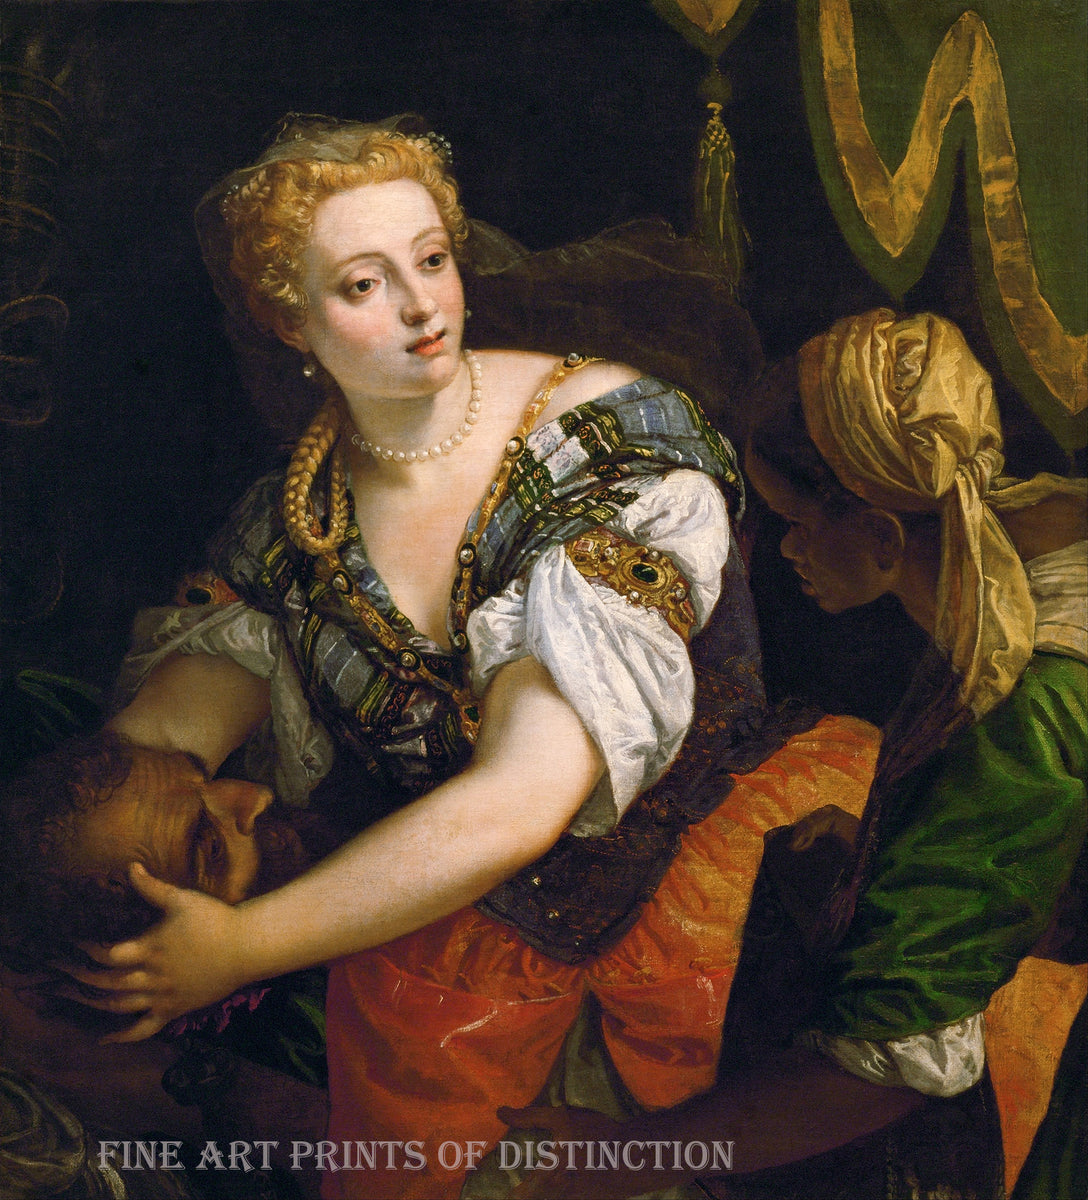 Judith with the Head of Holofernes painted by Paolo Veronese around 1580